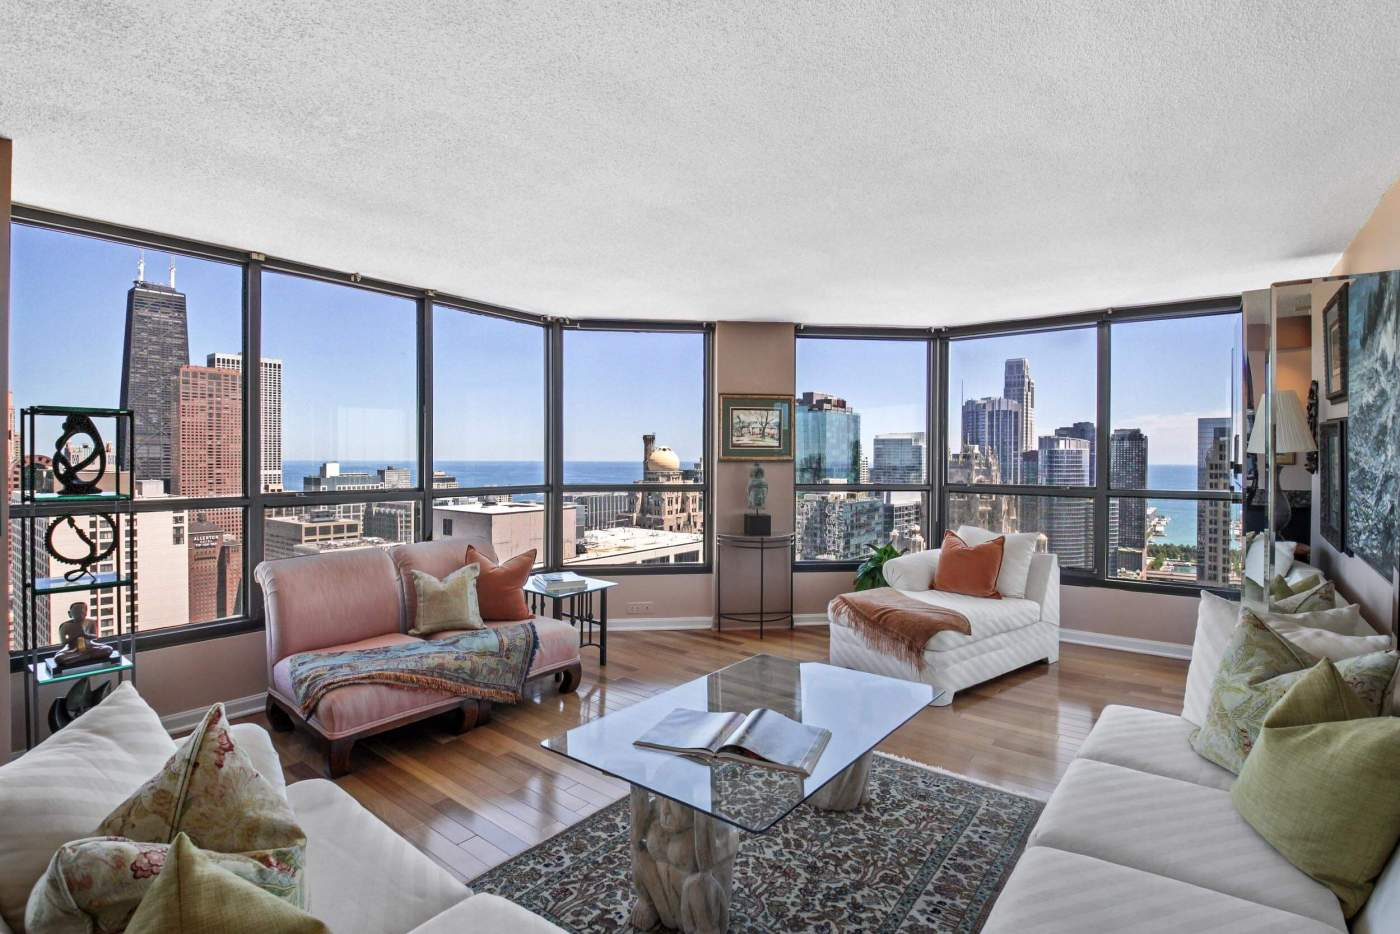 Real estate picture of a living room with amazing views in an apartment for sale